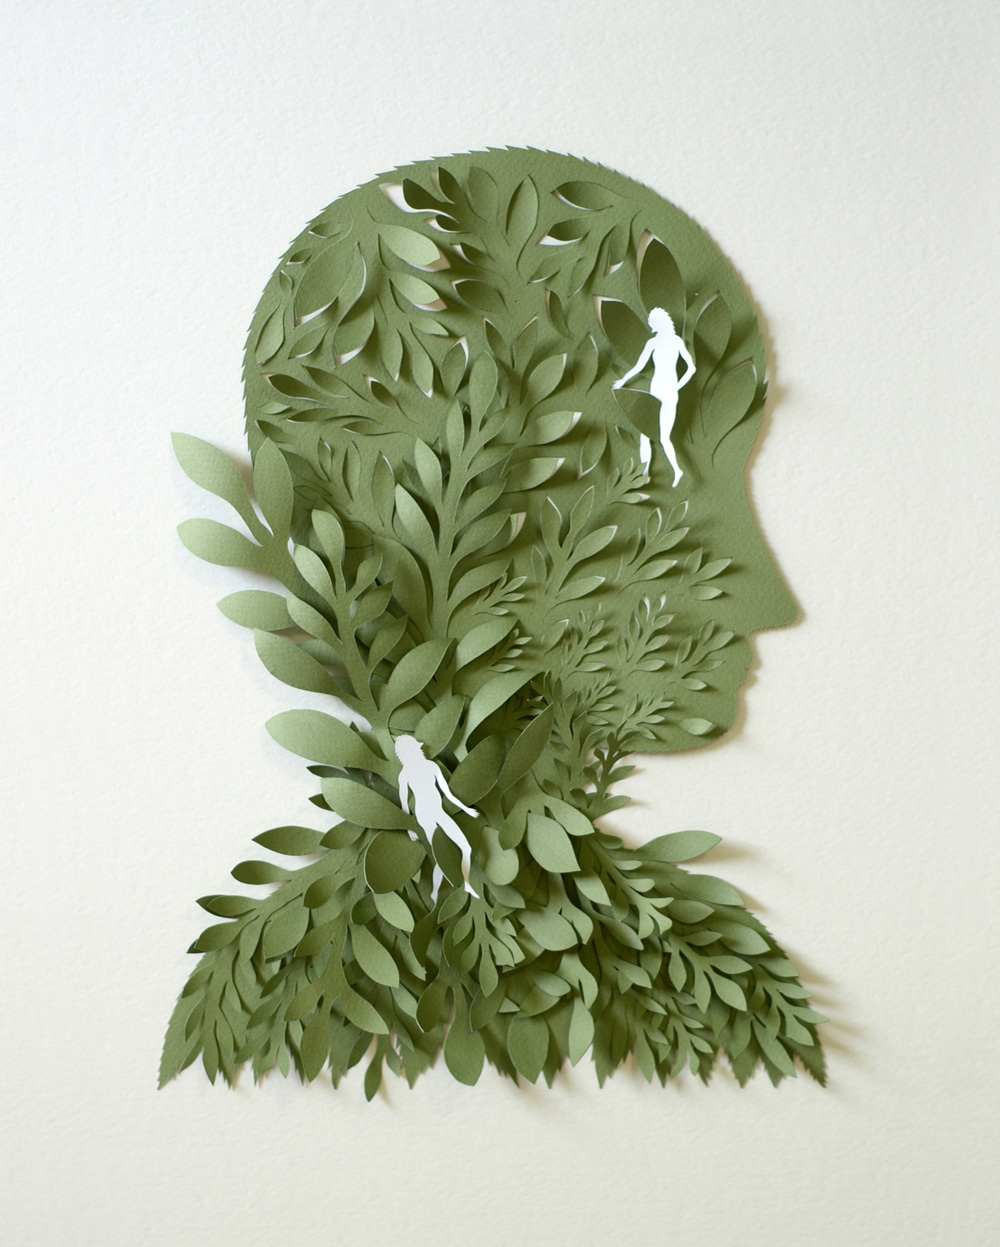 Green Head. Paper Sculpture by Elsa Mora